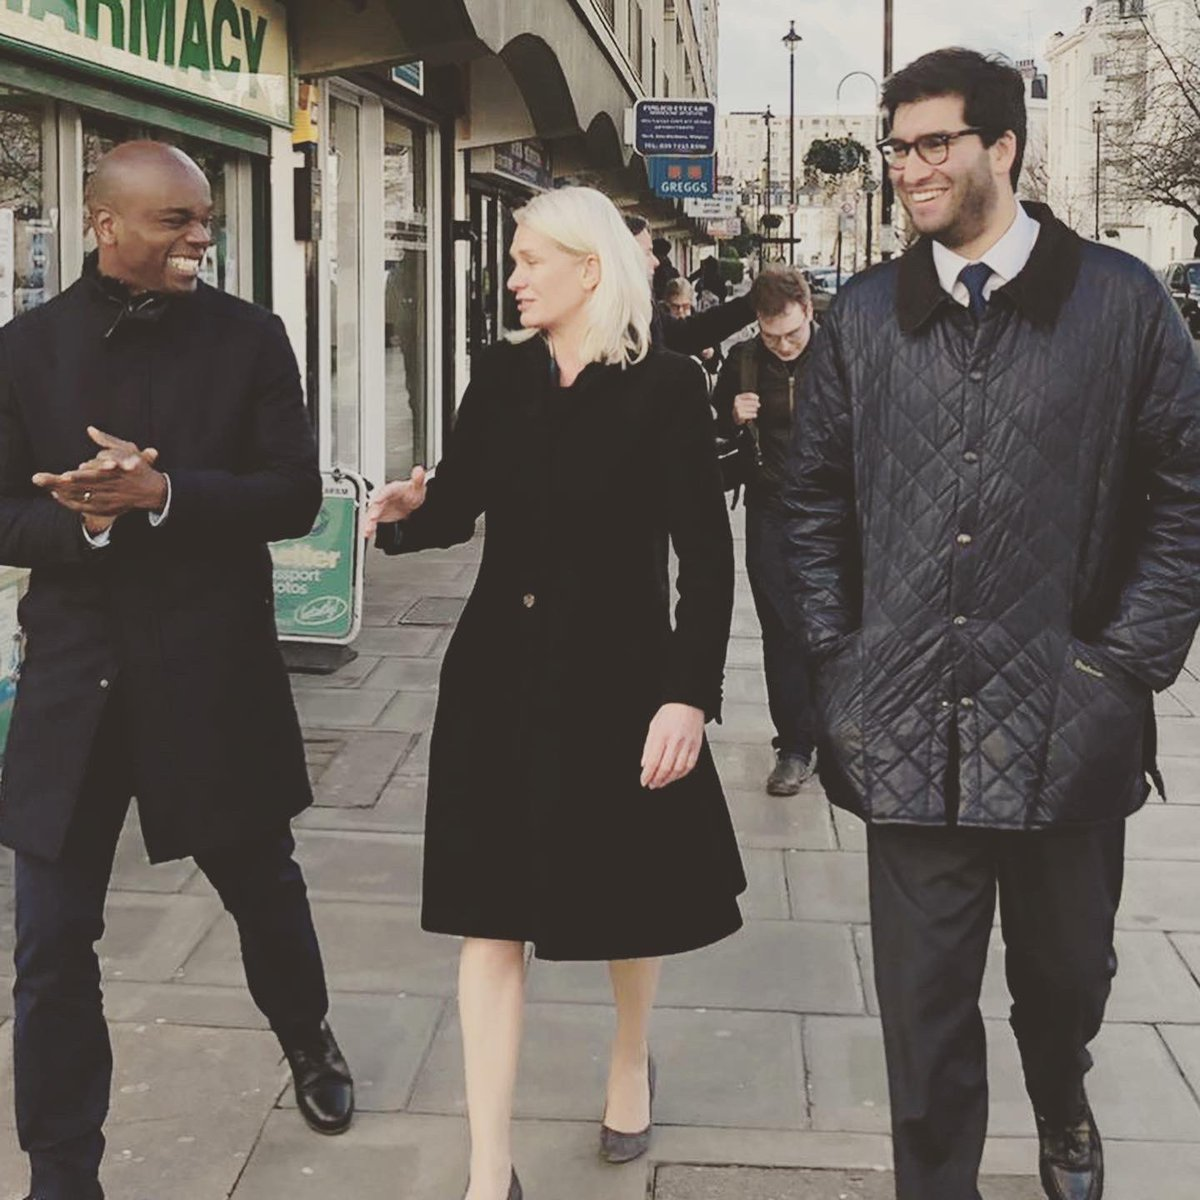 Fab to knock on doors with @ShaunBaileyUK - the man who'll make London safe again as Mayor - and @AmandaMilling, our new Party Chairman! A great team of @Conservatives from across London and beyond!  #makelondonsafeagain #mayoroflondon #conservative #campaigning #politics #london